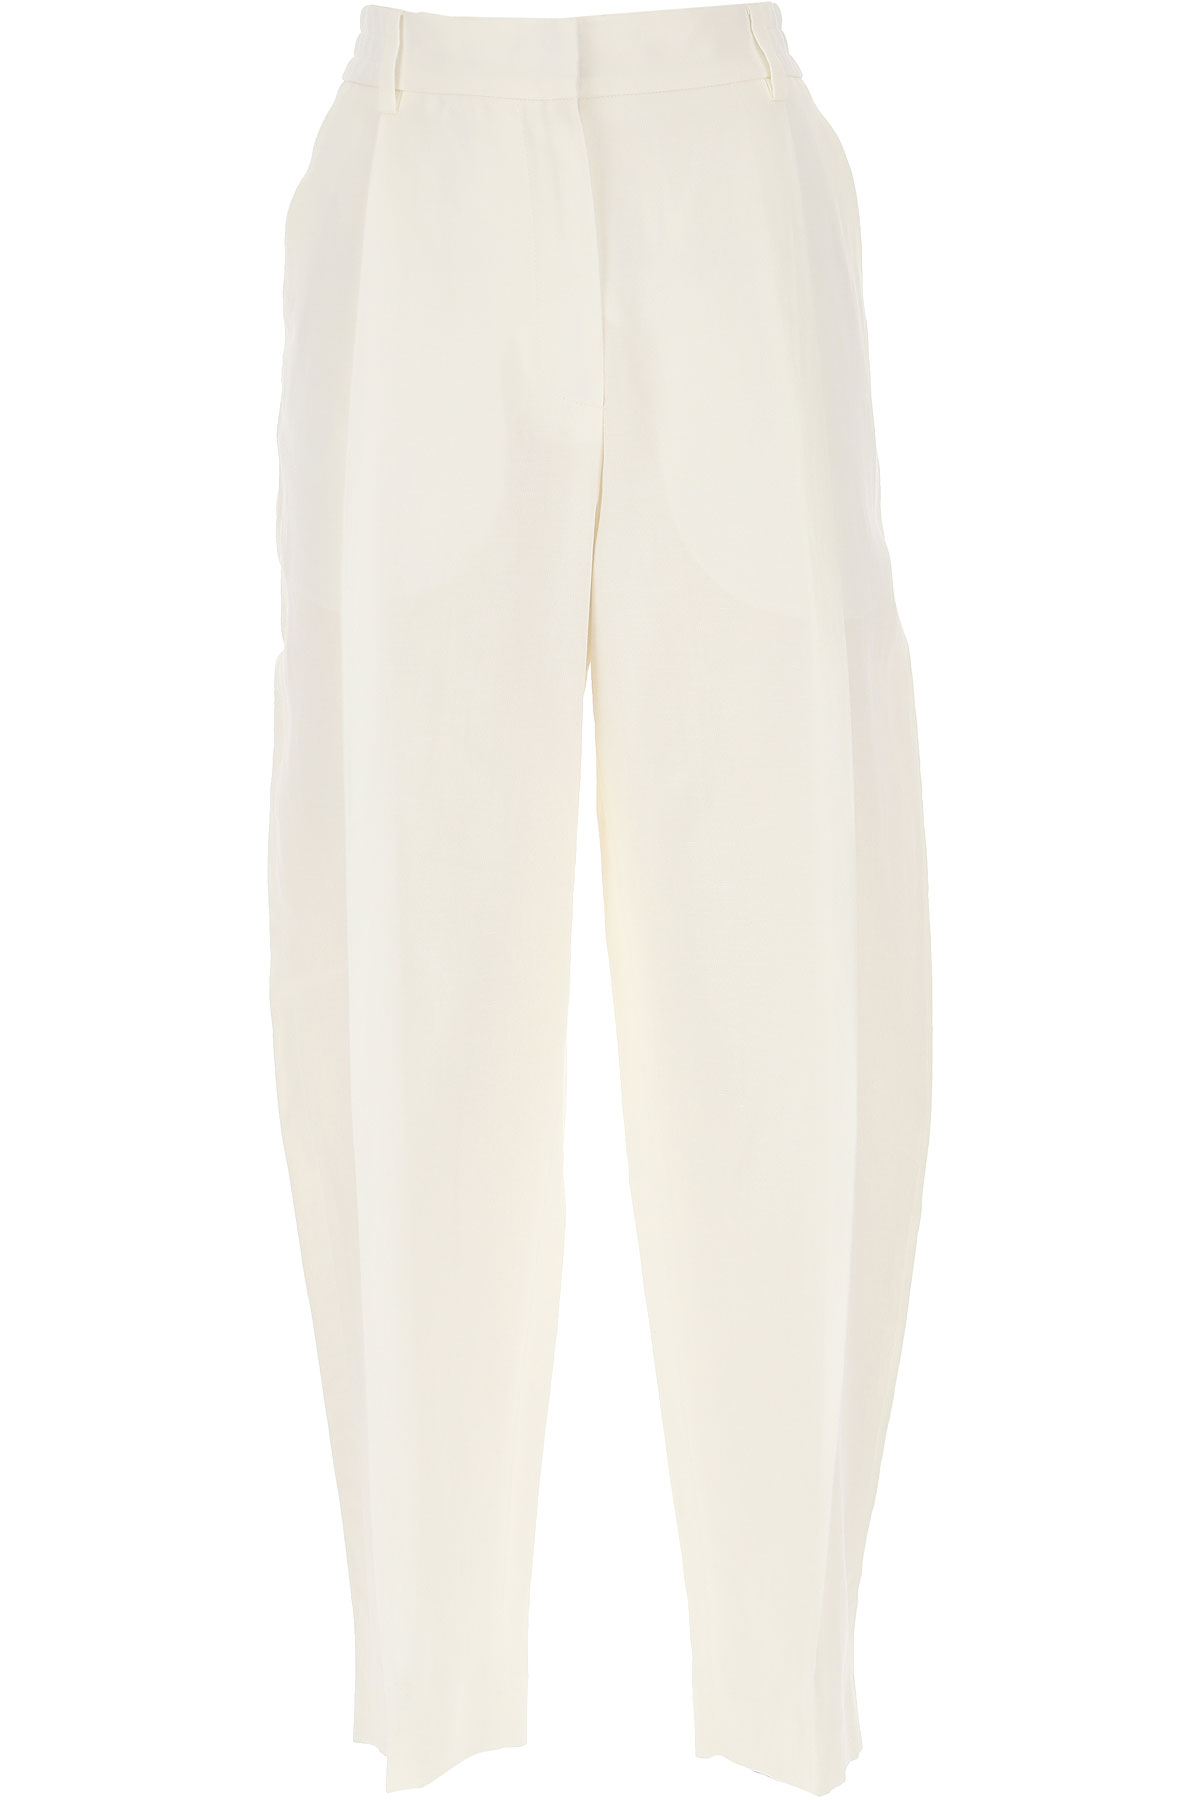 Alexander McQueen Pants for Women On Sale, White, Cotton, 2019, 28 30